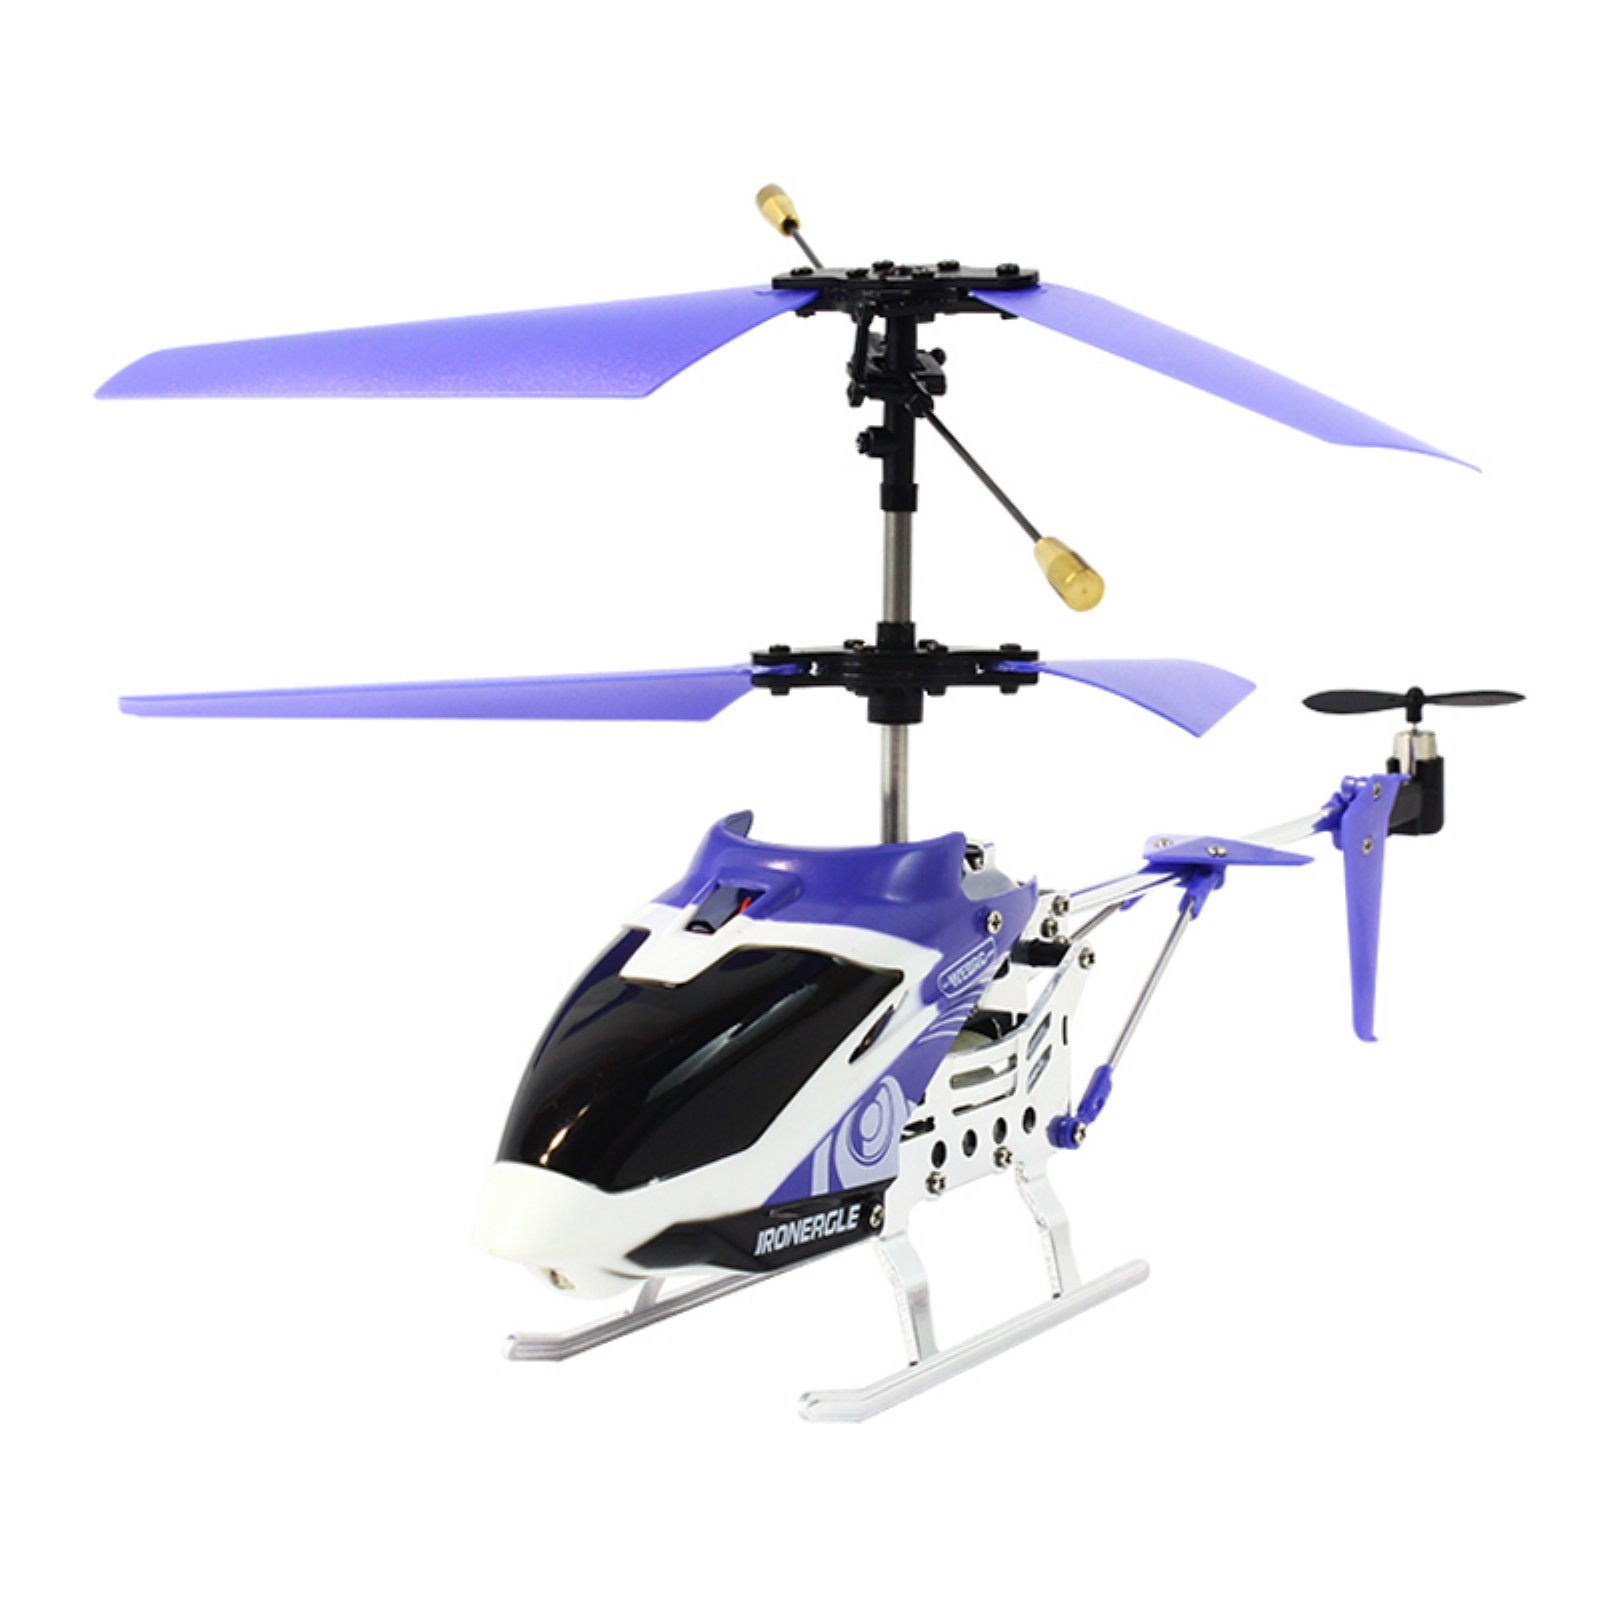 My WebRC Iron Eagle Helicopter 2 Remote Control by Groovy Toys